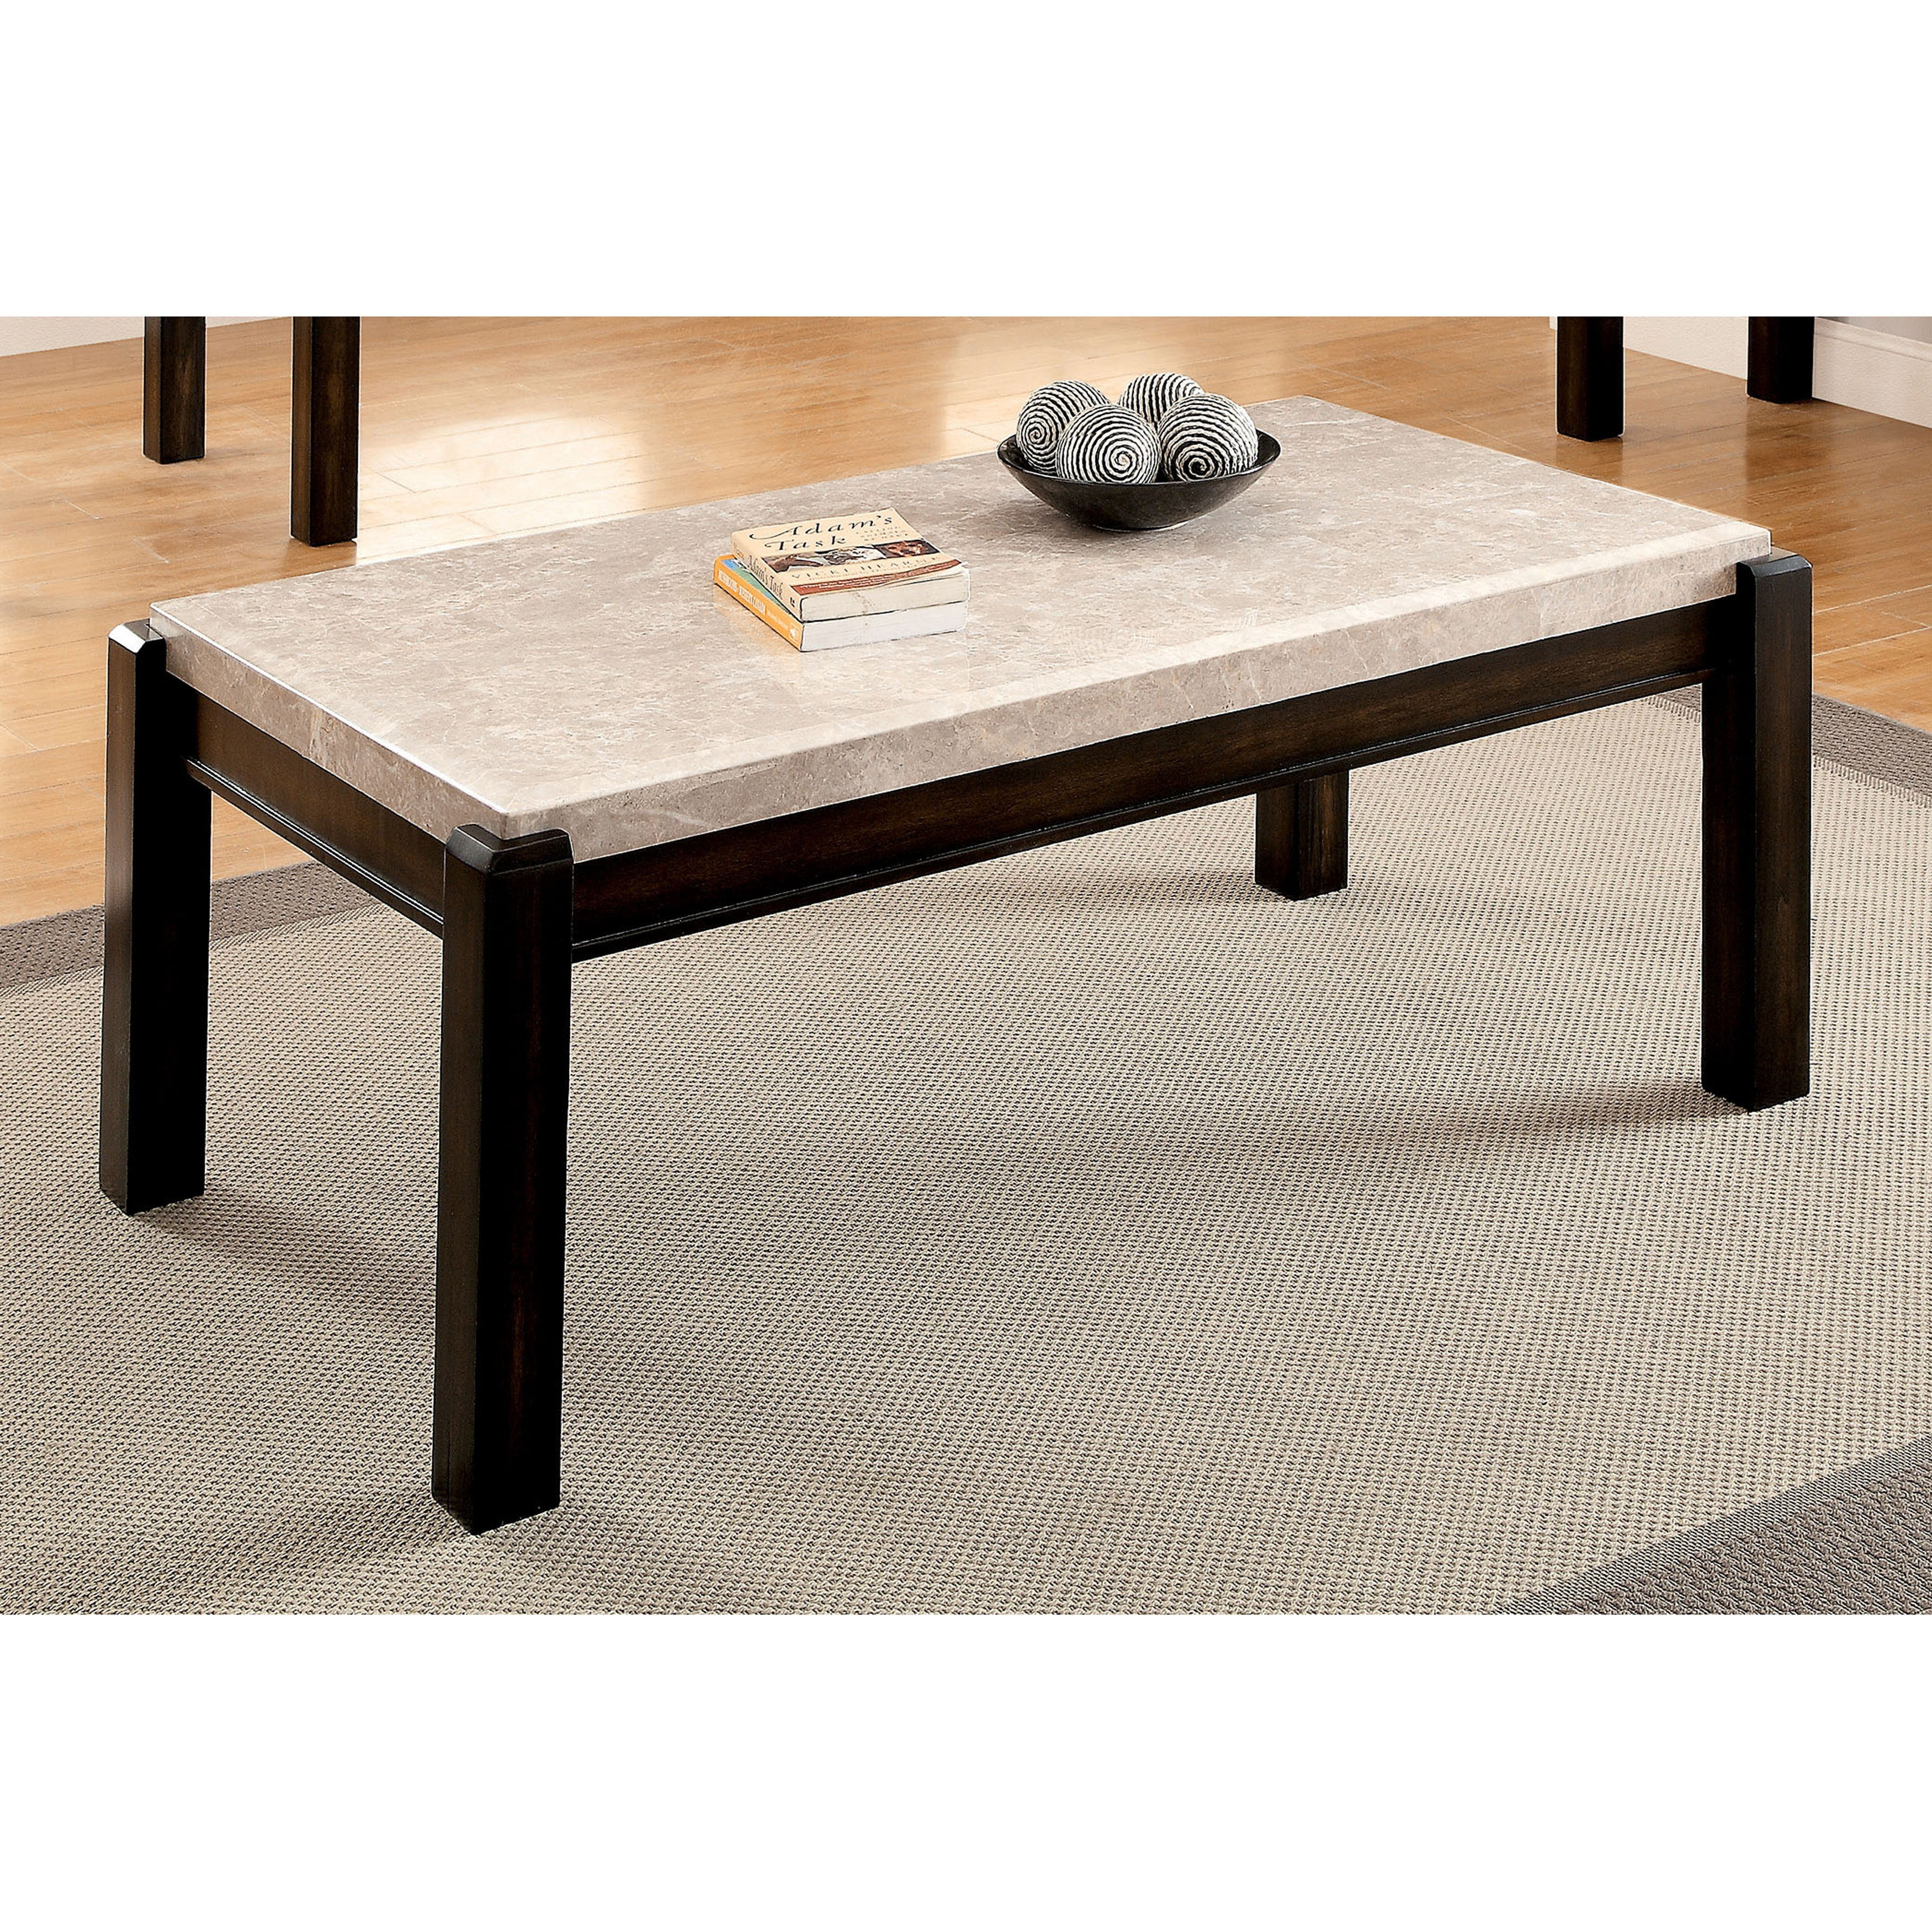 Furniture Of America Fons Contemporary Solid Wood Coffee Table